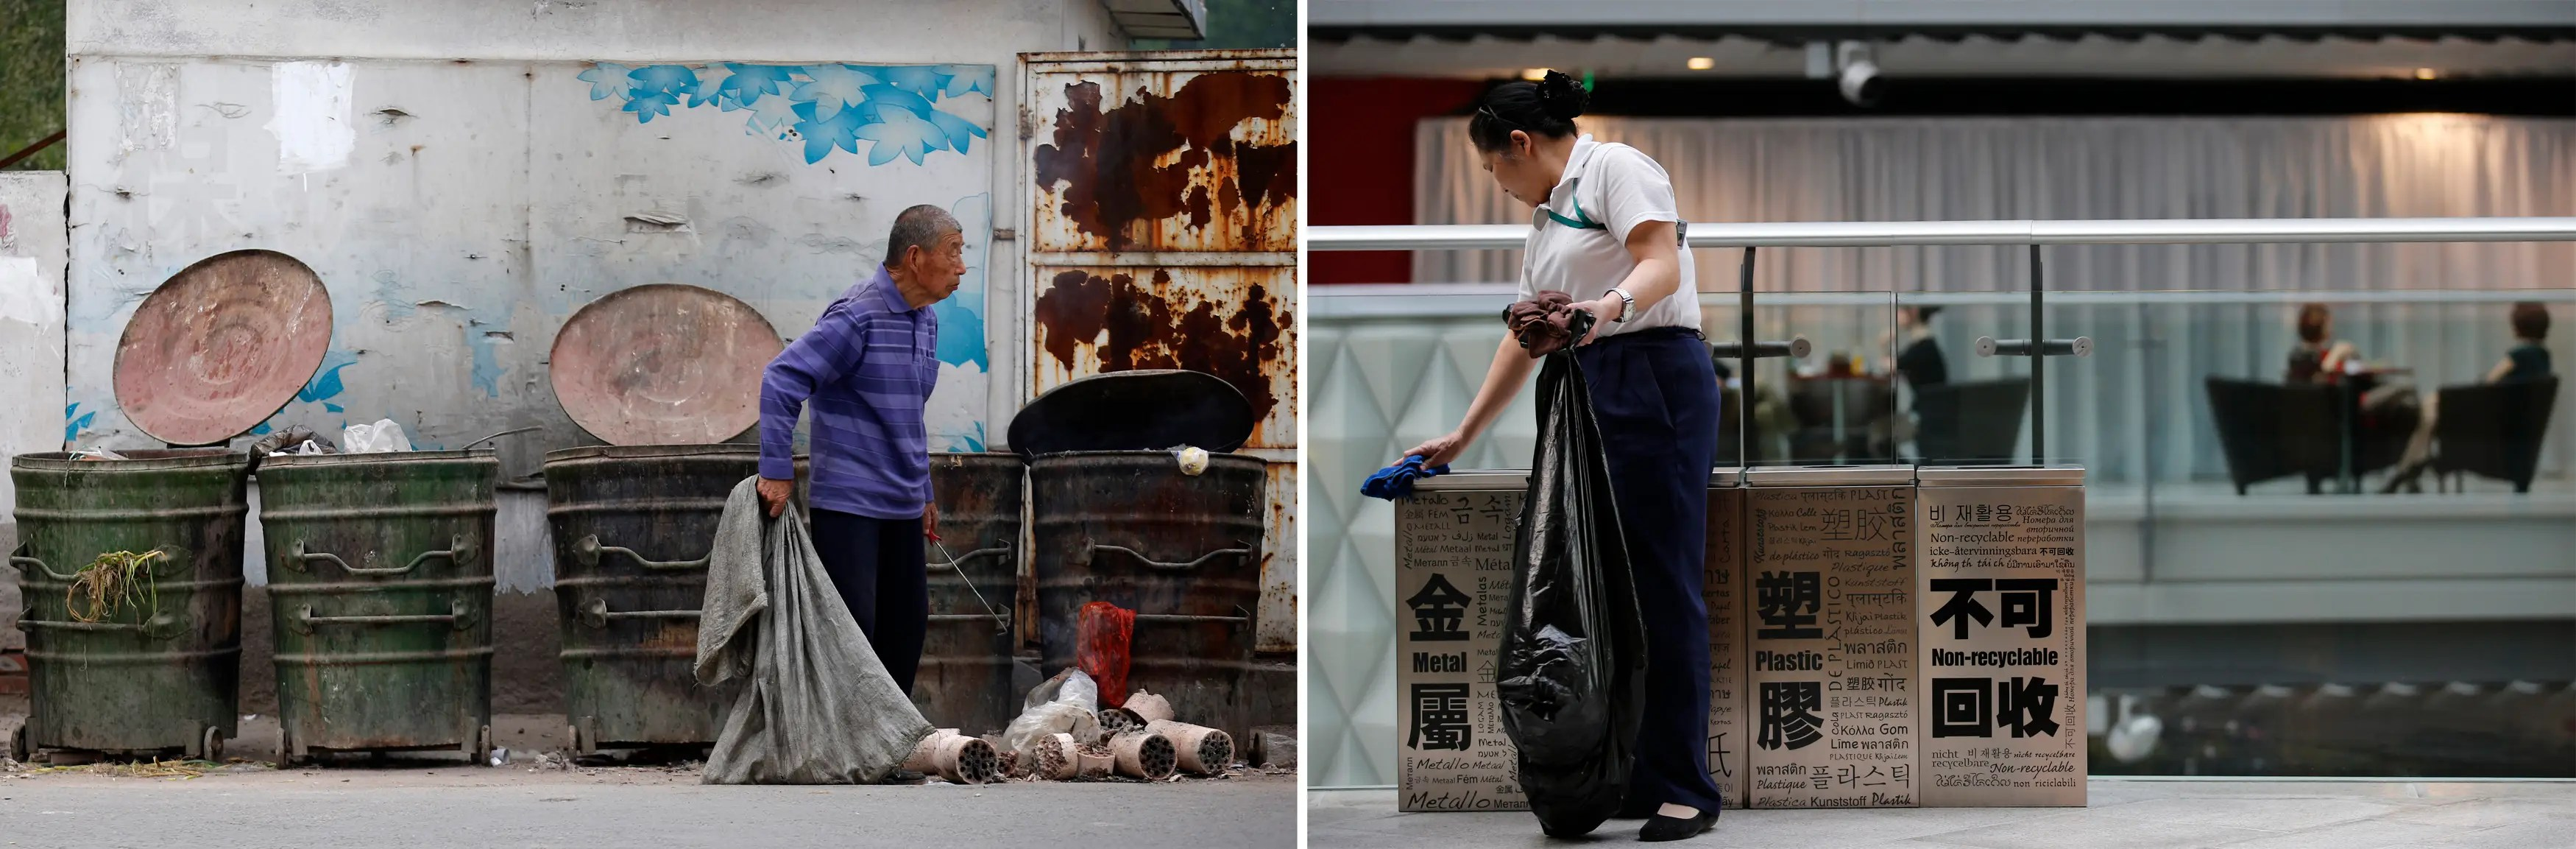 (L) A garbage collector rummages through trash cans in order to find recyclable garbage in a residential area for migrant workers and (R) a worker cleans trash cans at a shopping mall.